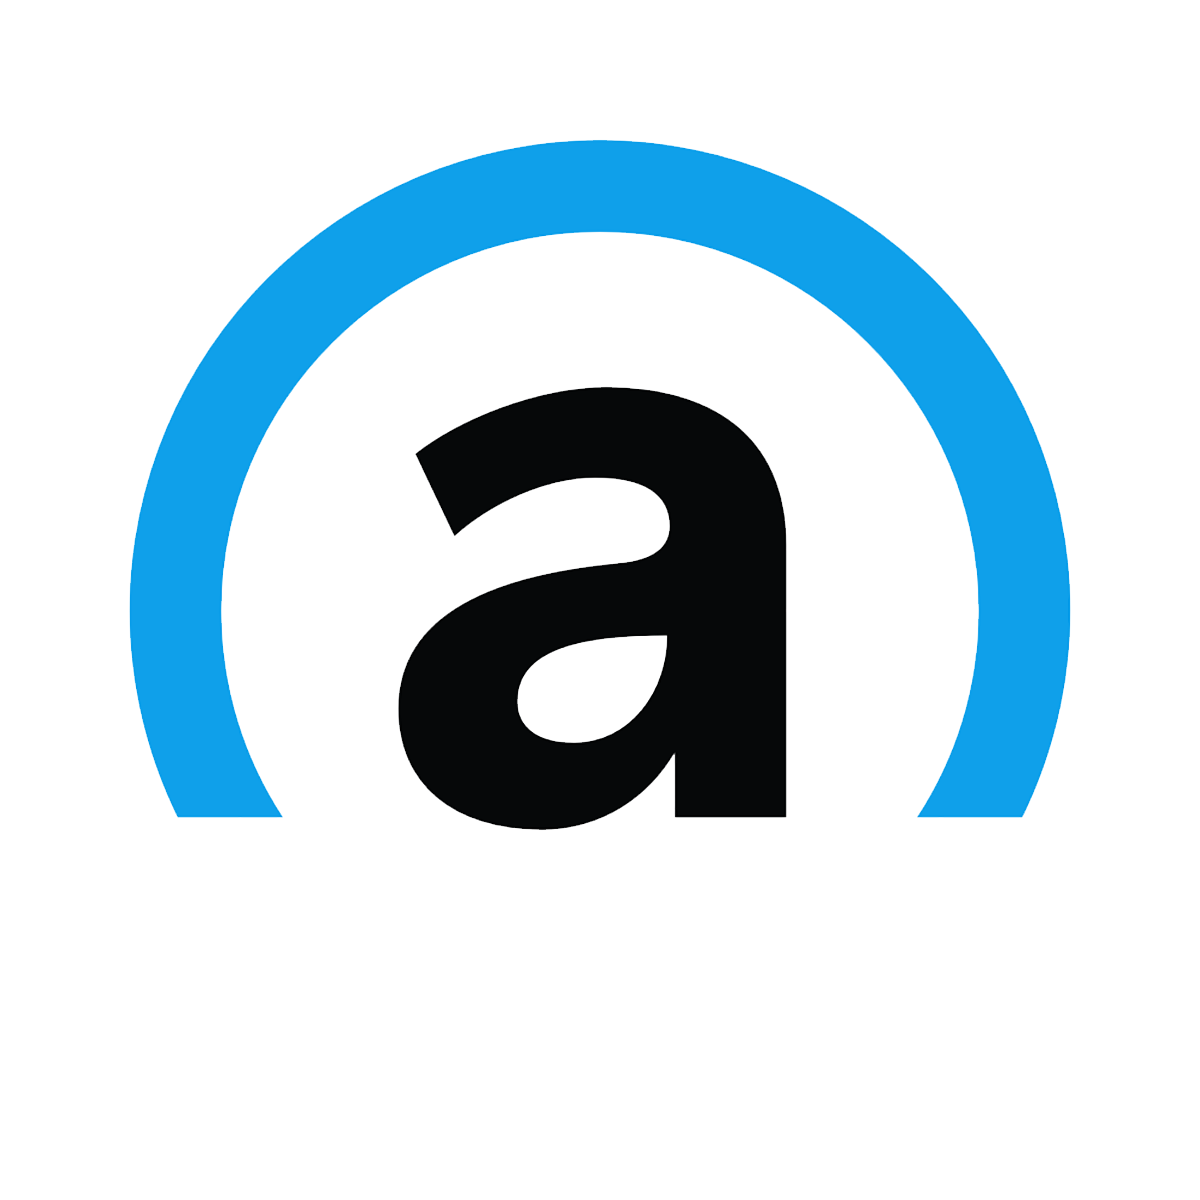 affirm-logo-a-with-blue-circle